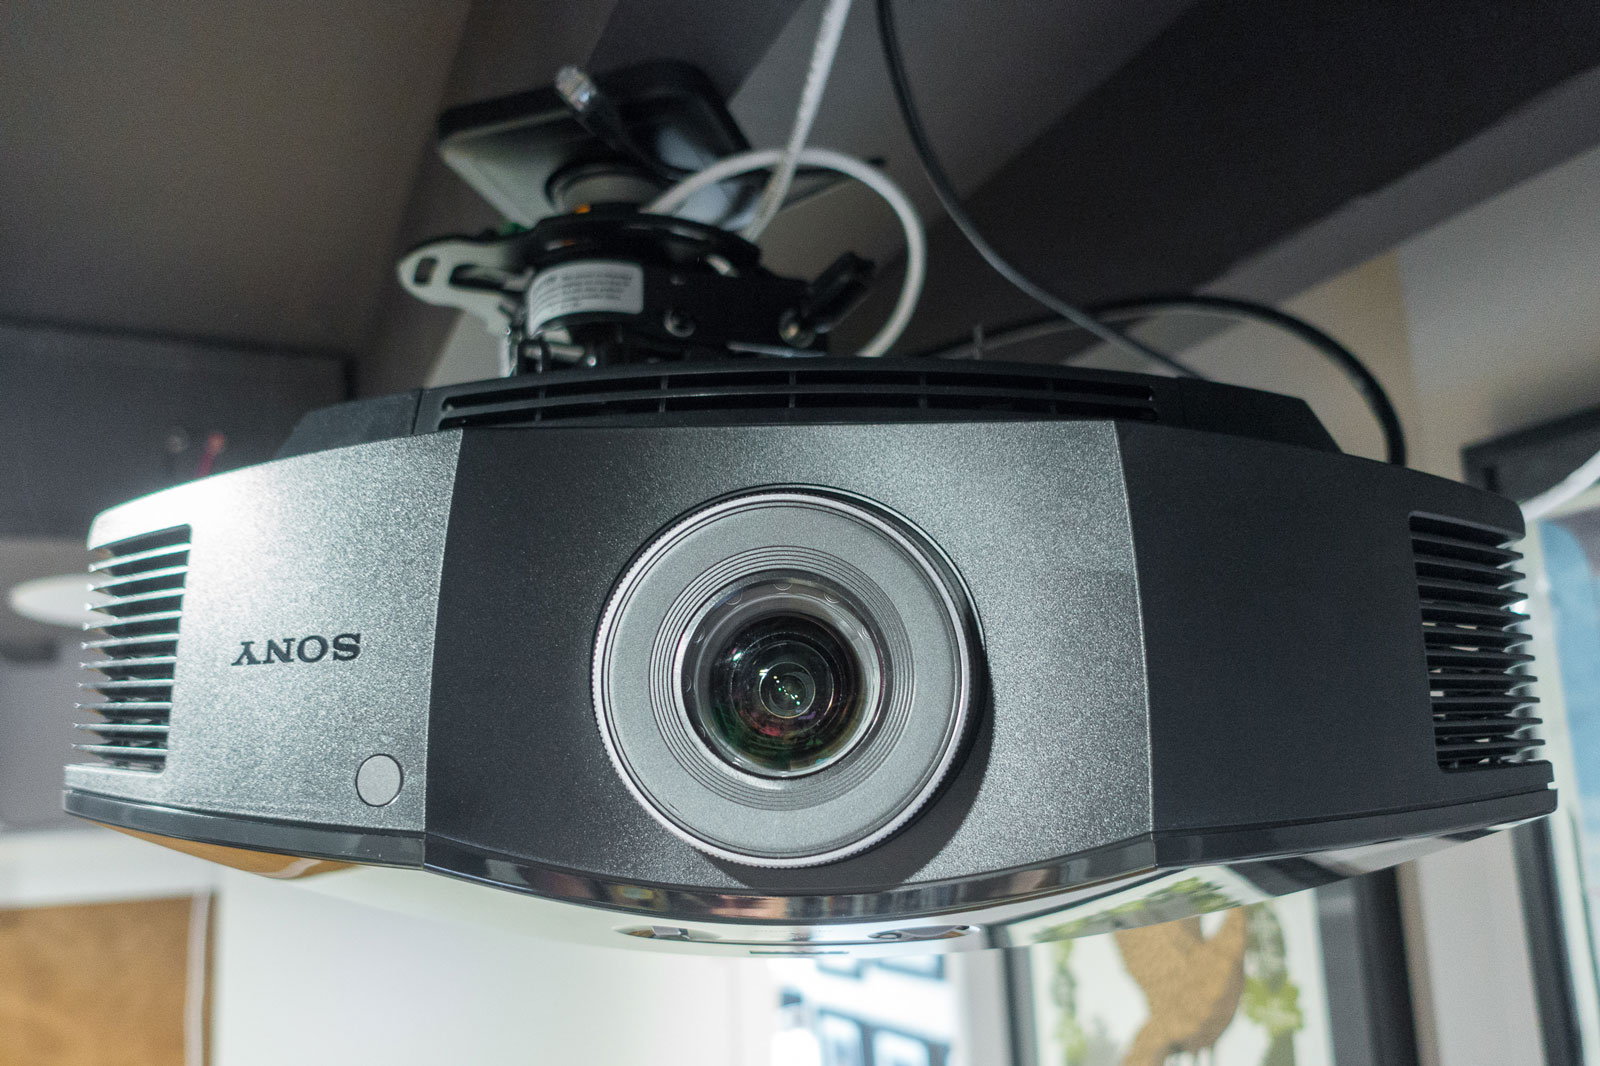 The best projector for a home theater